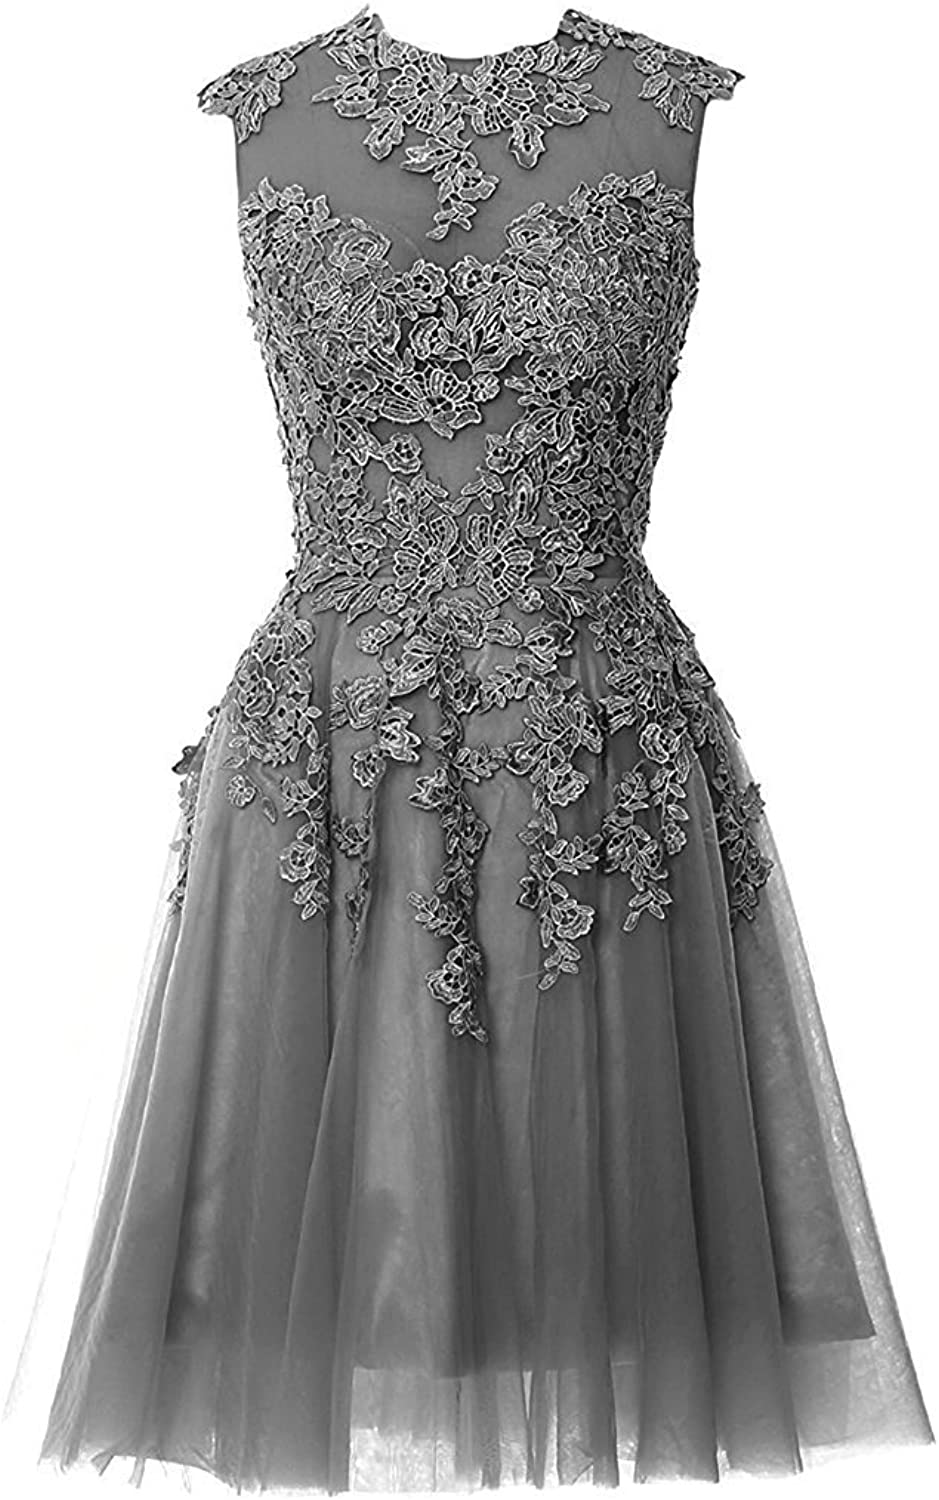 DINGZAN Sexy Sheer Lace Bodice Cocktail Graduation Homecoming Dresses Short